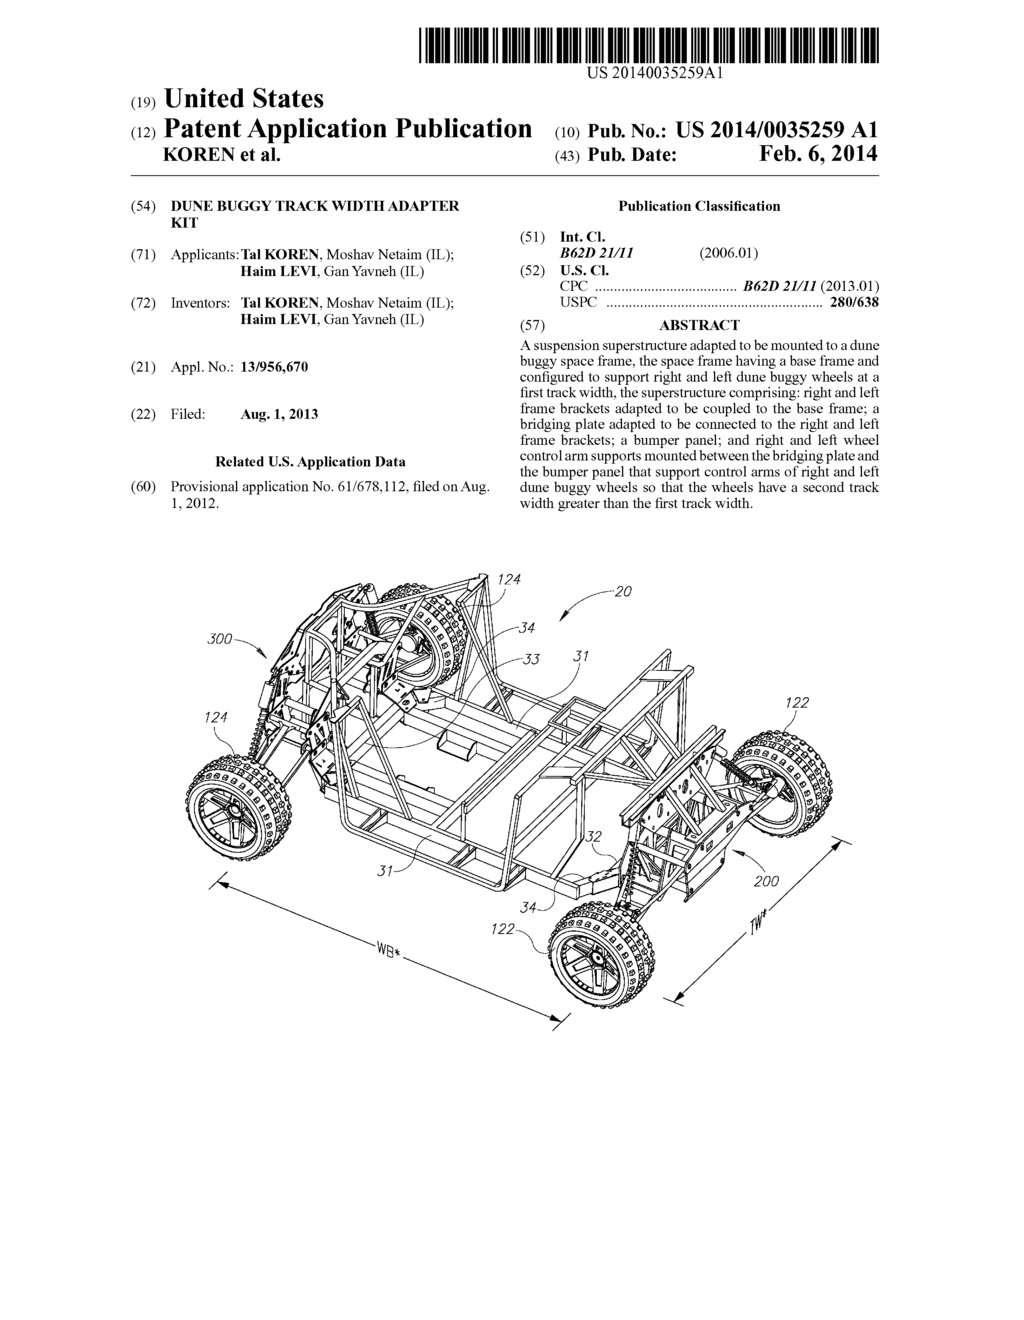 DUNE BUGGY TRACK WIDTH ADAPTER KIT - diagram, schematic, and image 01